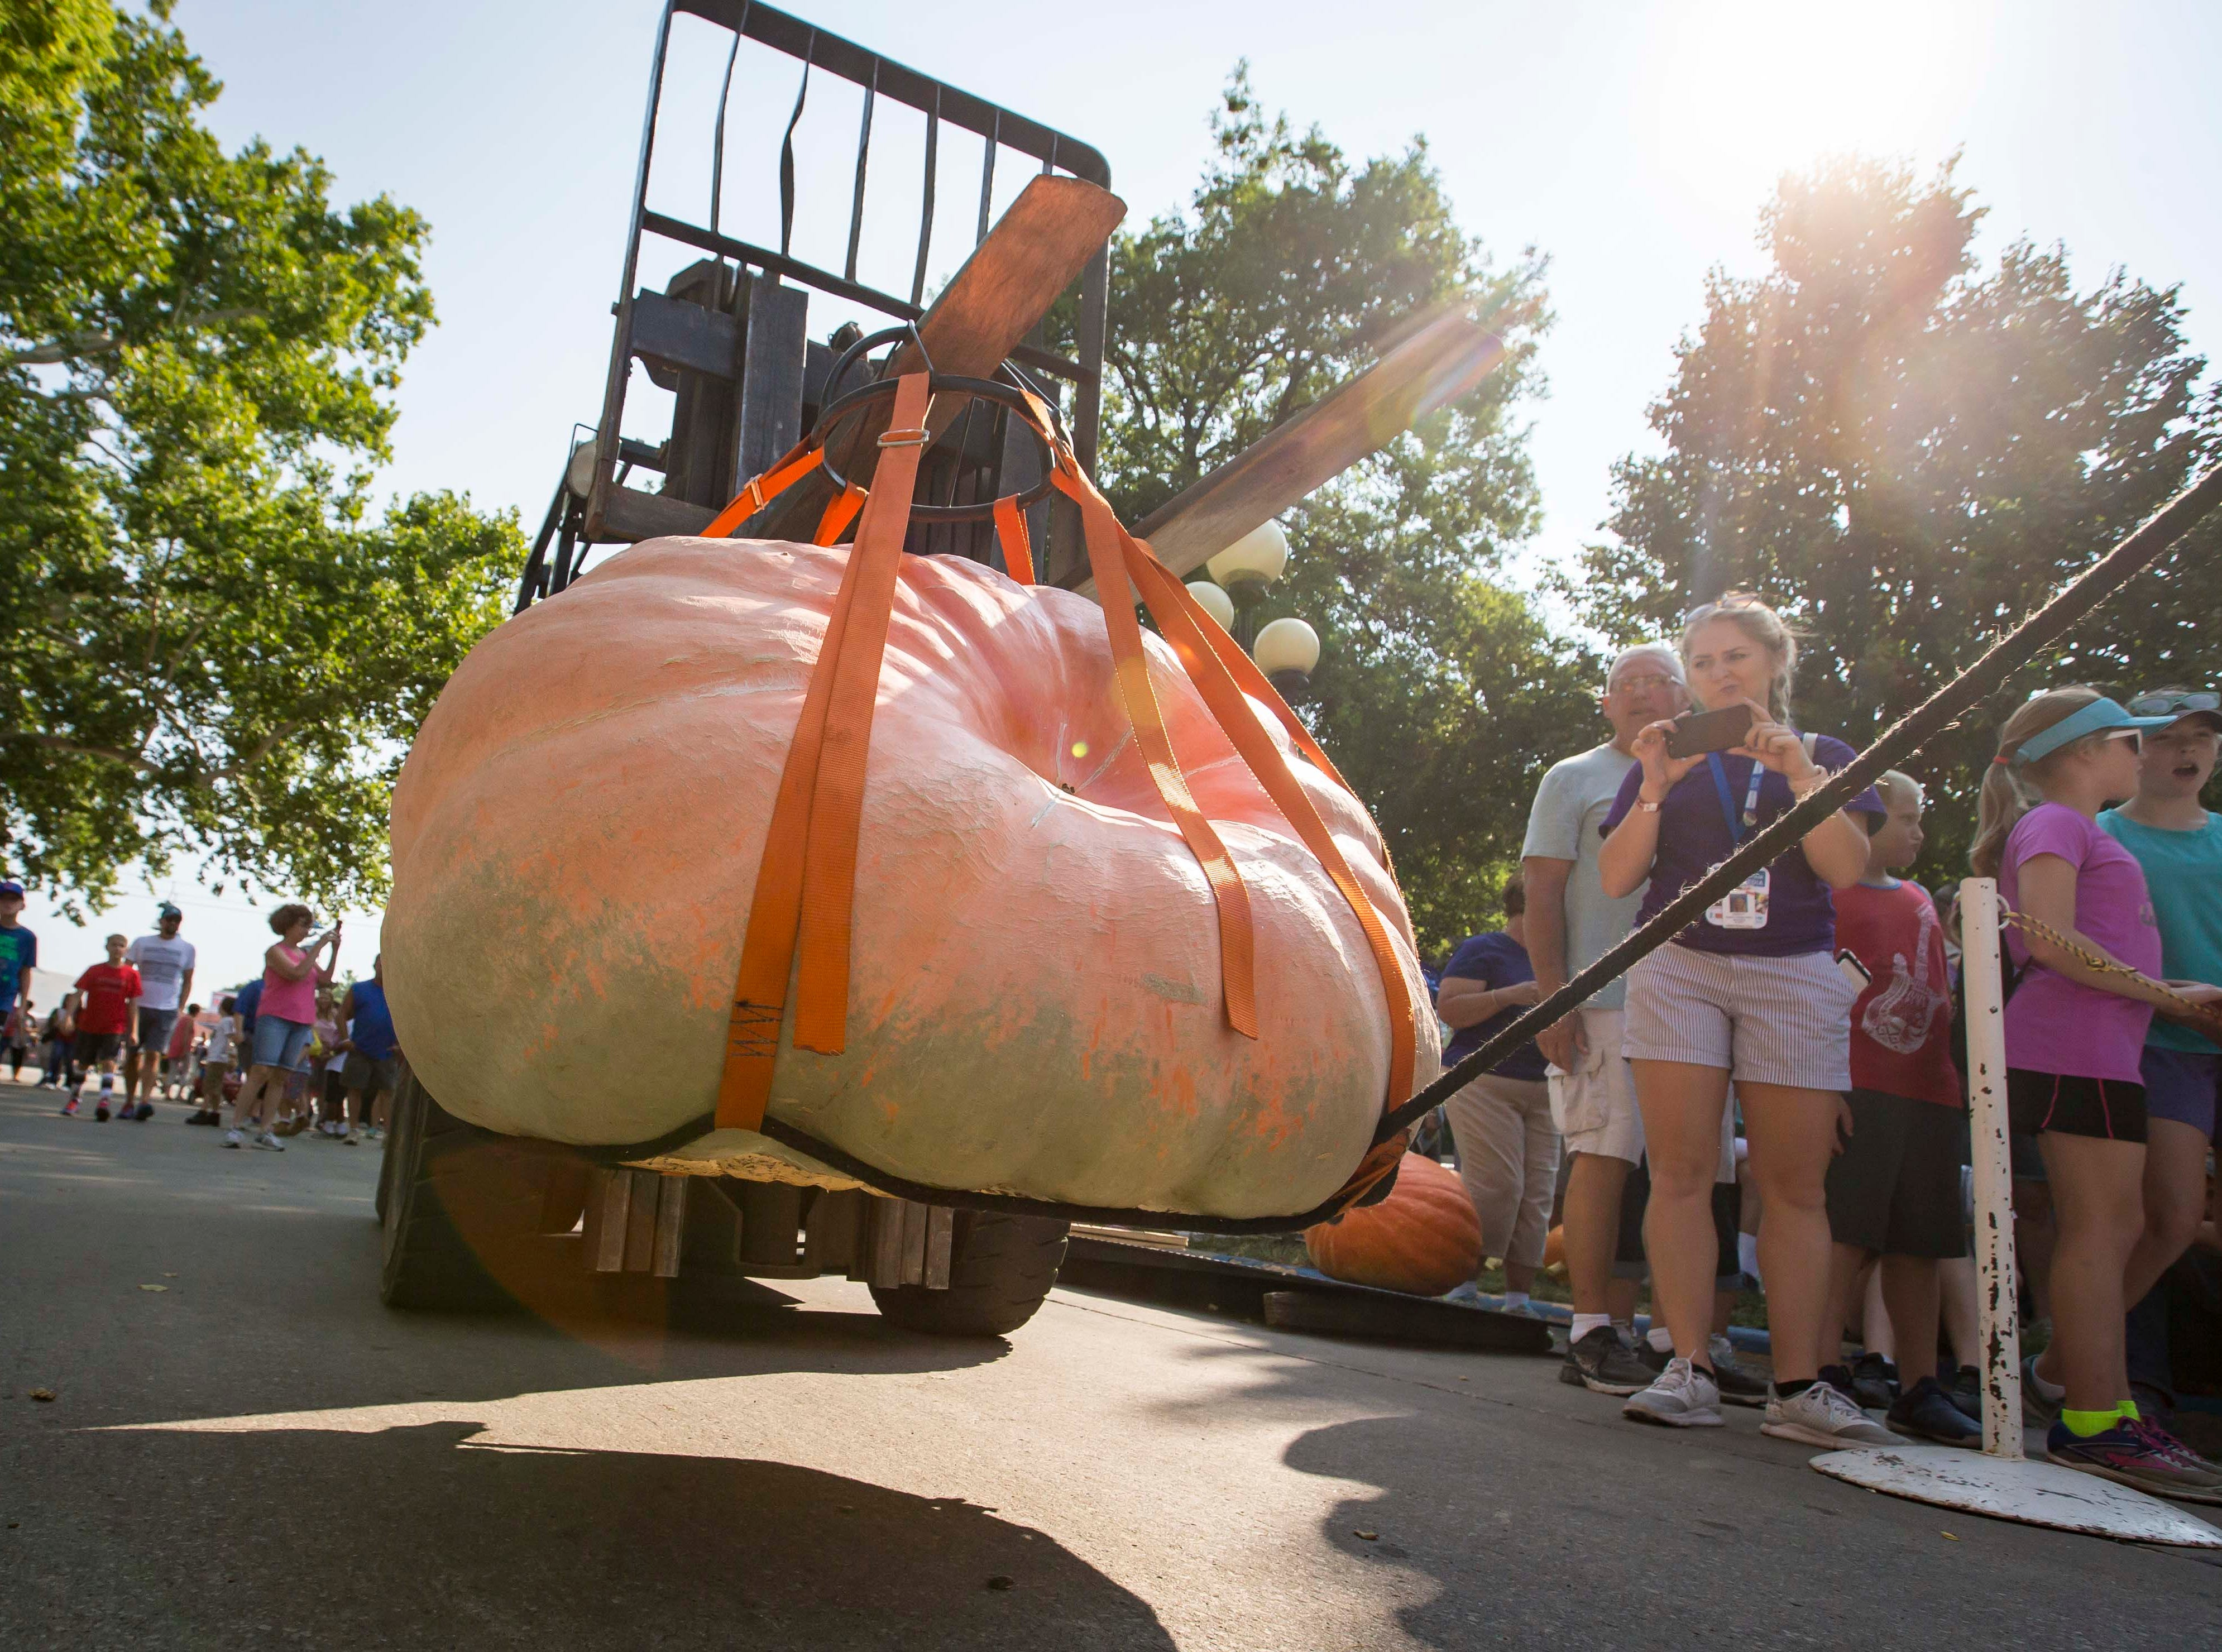 Jackie Davis of Bloomfield has her pumpkin weighed during the Big Pumpkin contest at the Iowa State Fair Friday, Aug. 10, 2018, in Des Moines, Iowa.